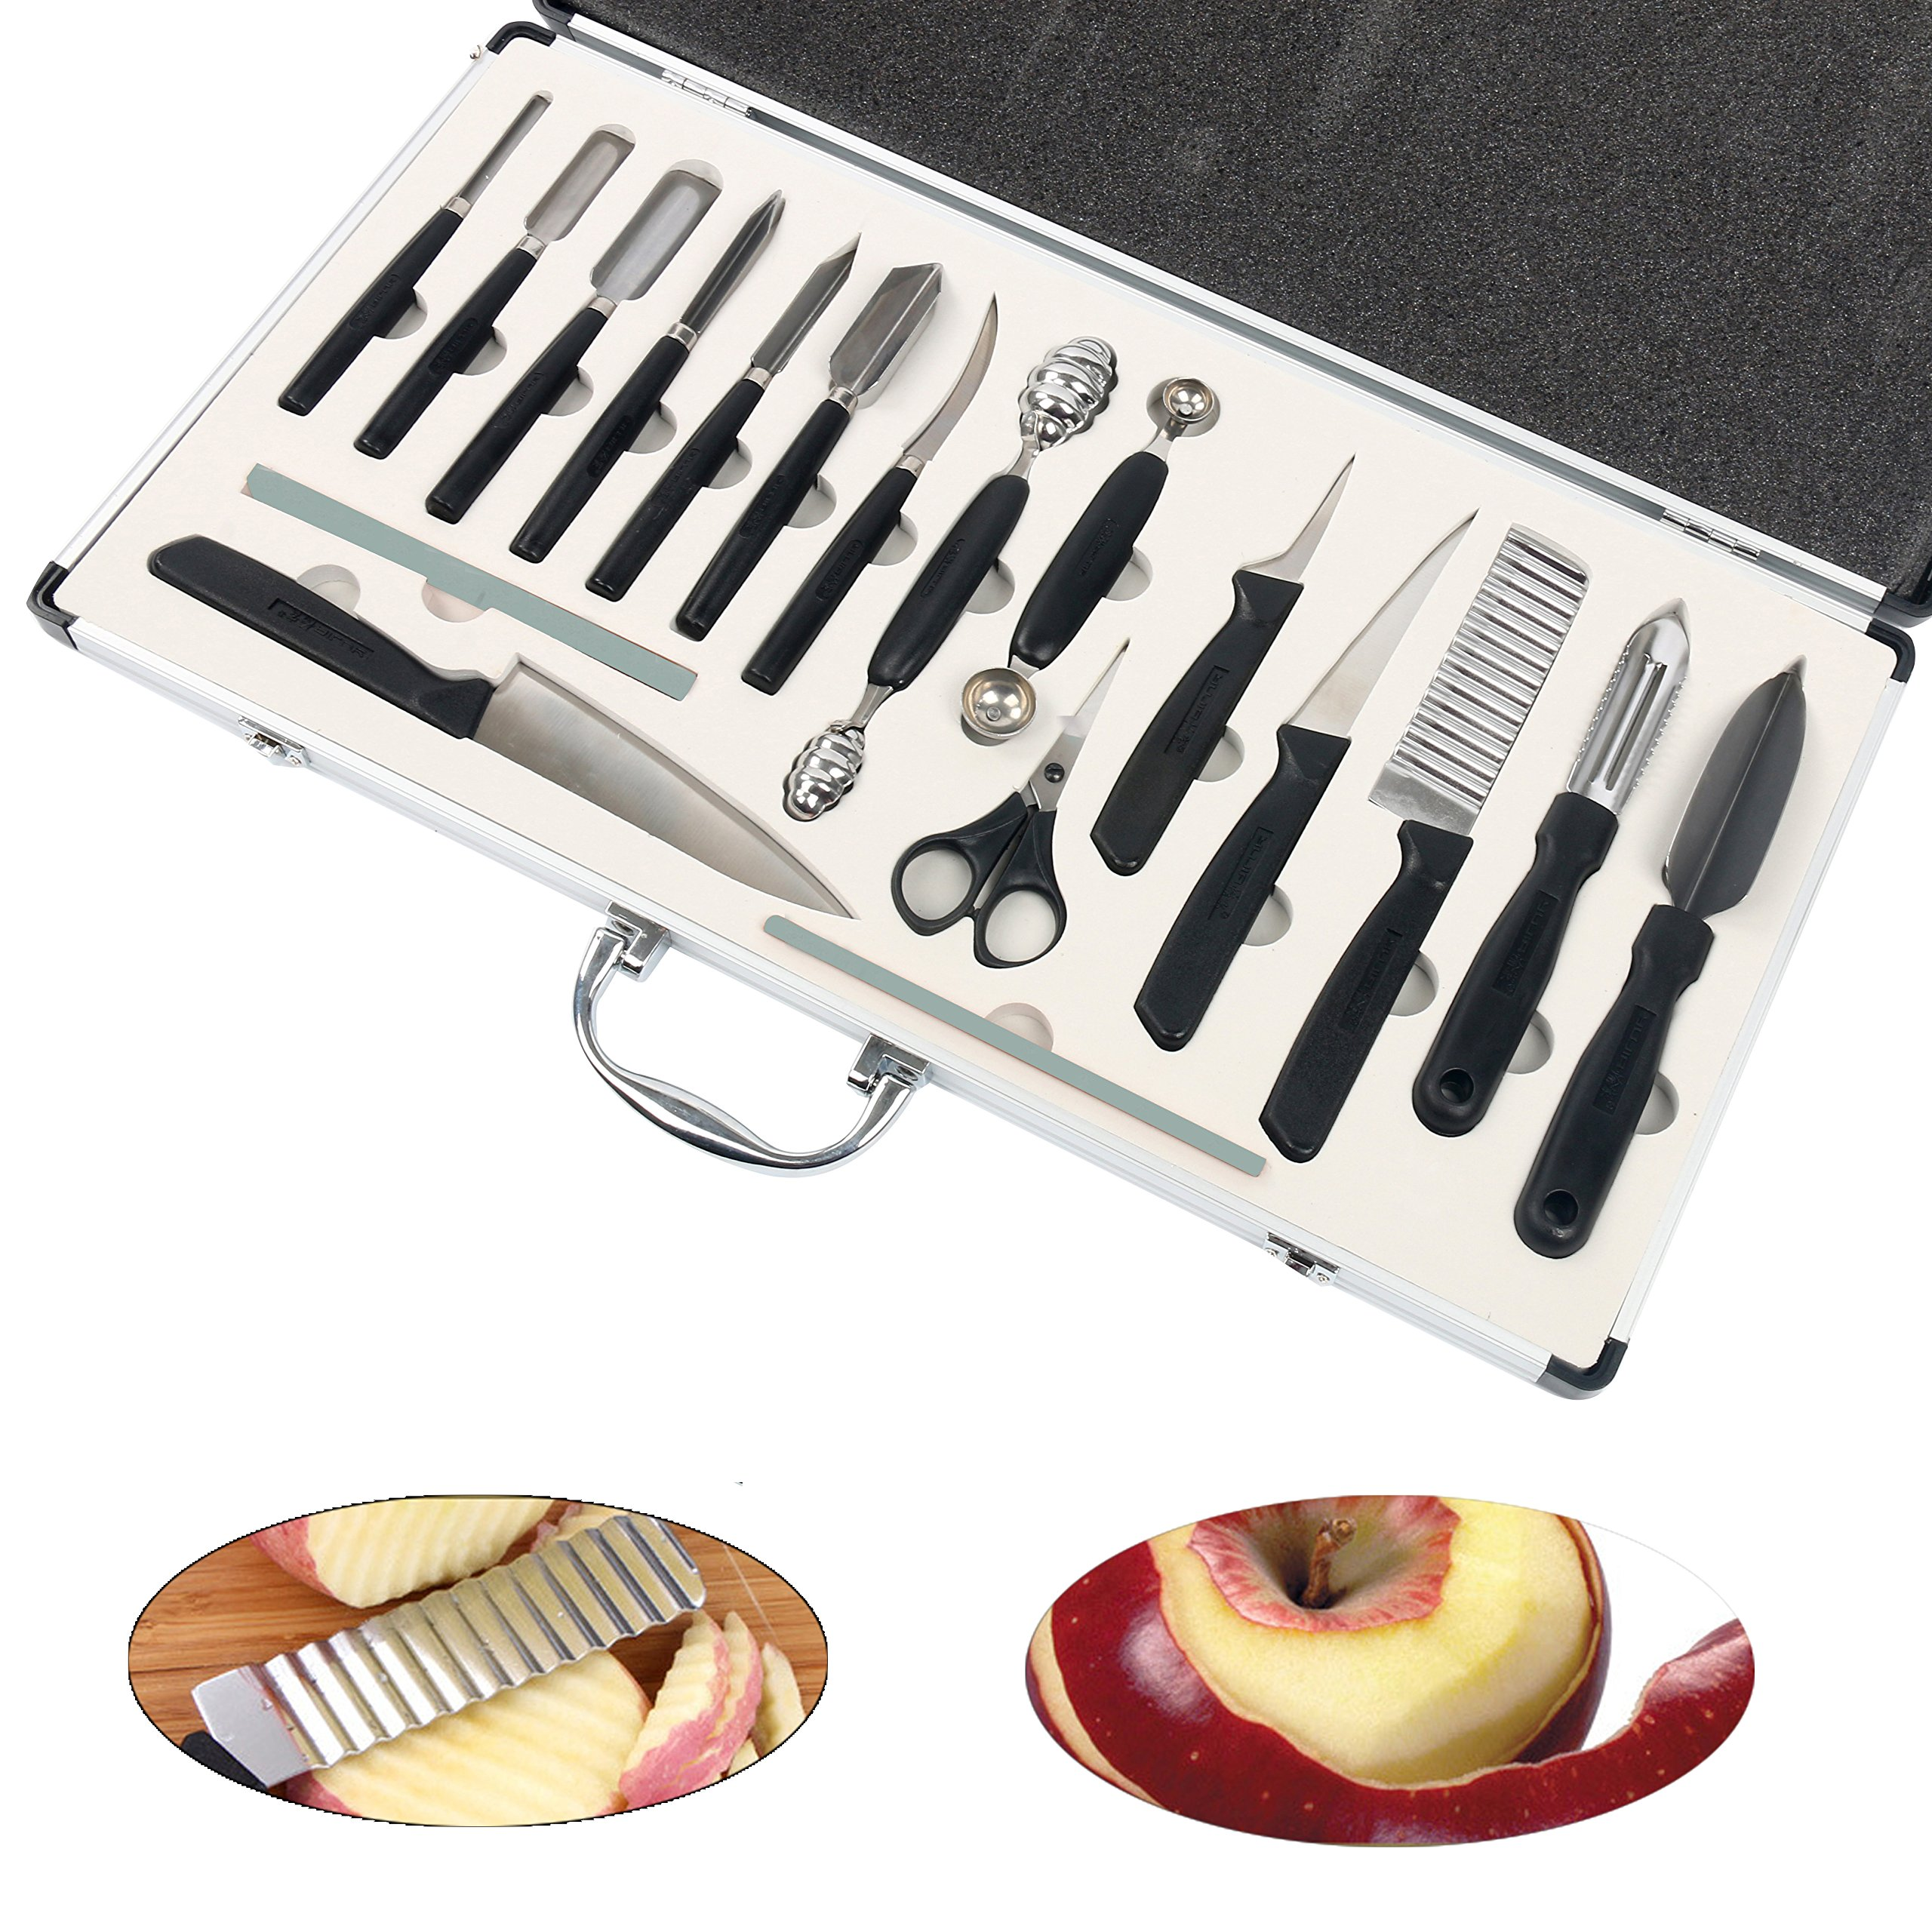 YaeTek 18PCS Culinary Fruit Vegetable Carving Tool Set